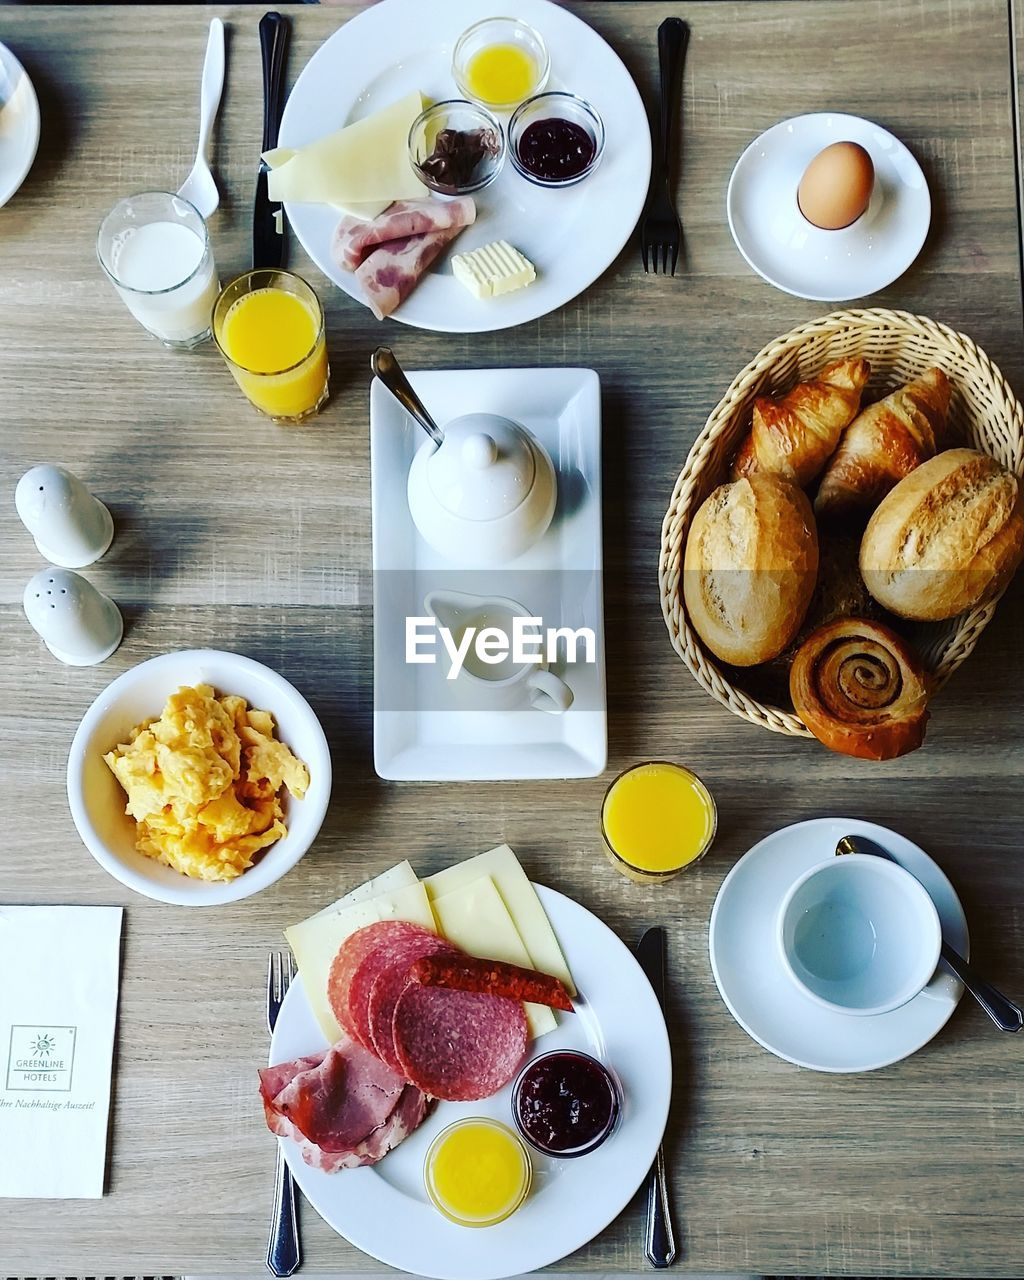 food and drink, food, table, freshness, plate, drink, meal, healthy eating, cup, bread, breakfast, high angle view, ready-to-eat, refreshment, coffee, croissant, directly above, fruit, bowl, serving size, no people, french food, glass, baked pastry item, teapot